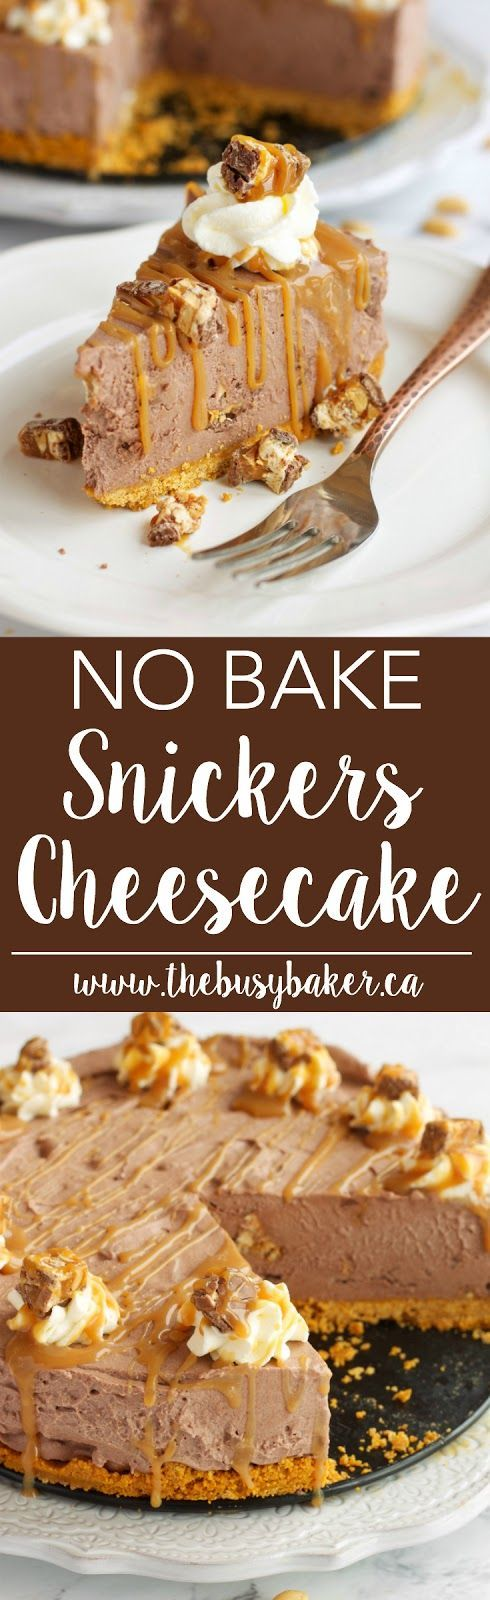 This No Bake Snickers Cheesecake is the perfect easy to make decadent dessert!